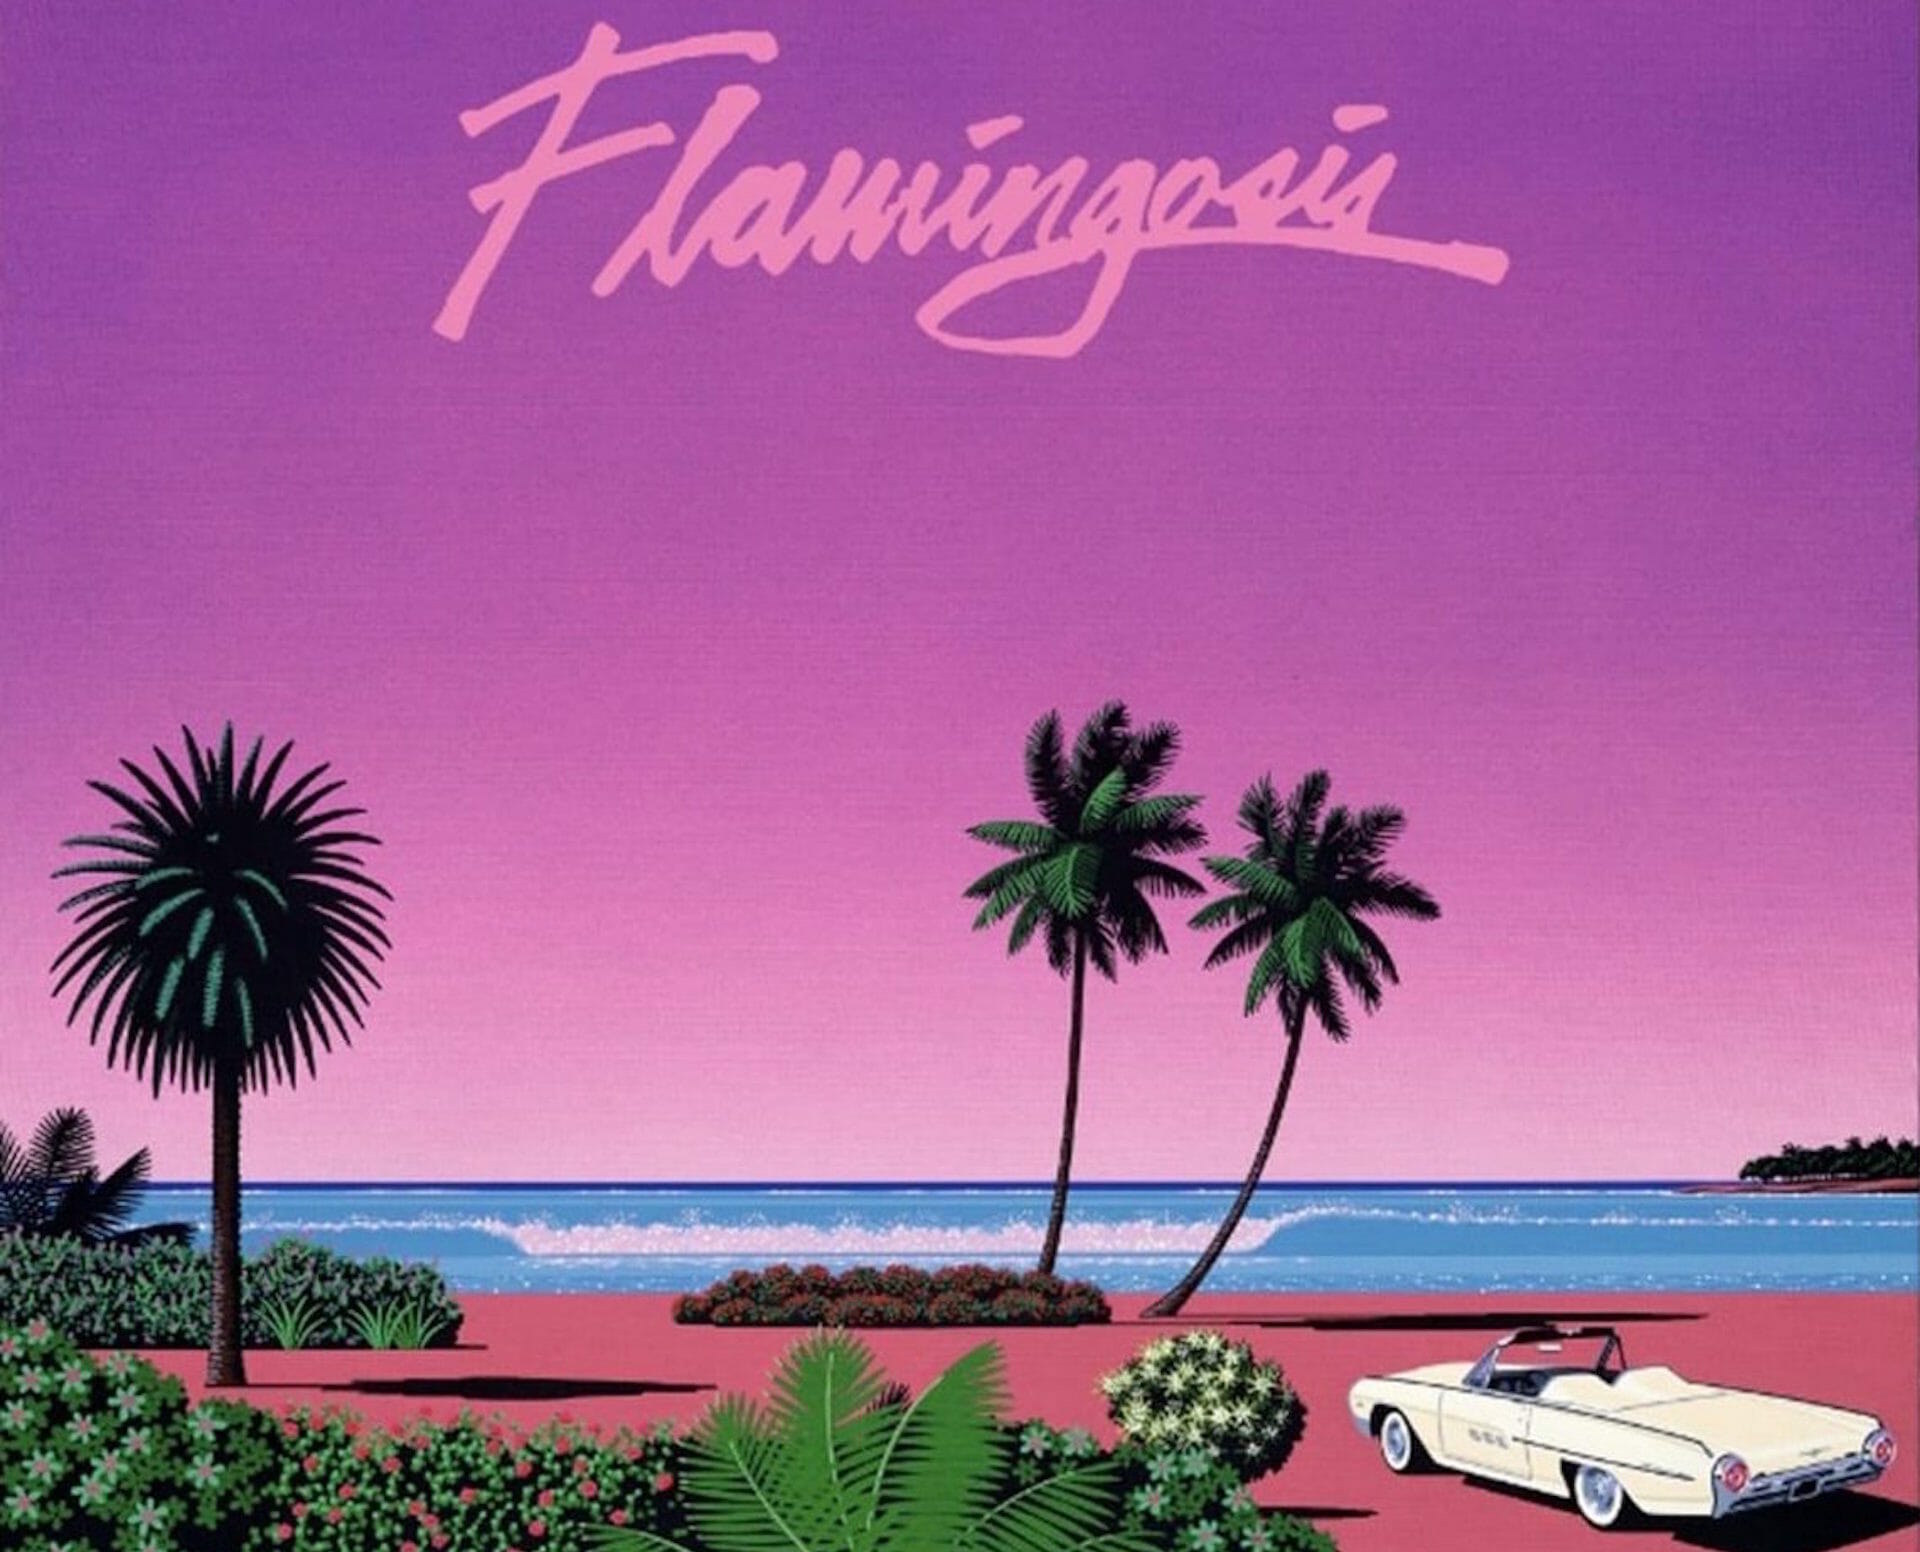 Flamingosis crafts pool party perfection with 'Jet Skis & Hennesy'Flamingosis Jet Skis And Hennesy